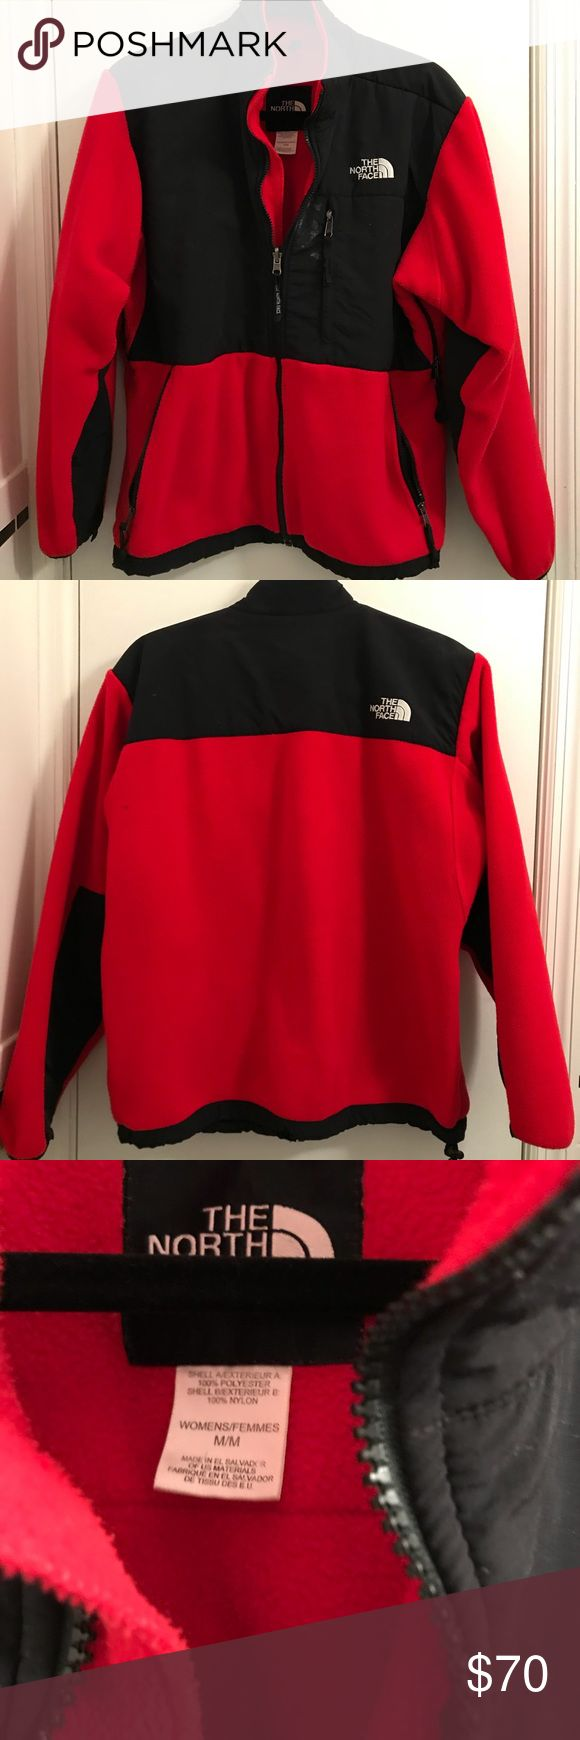 The North Face Women's Denali Fleece Jacket Red/black combo. Great for wintertime. Has a little white stain on the front by the chest zipper. The North Face Jackets & Coats Puffers